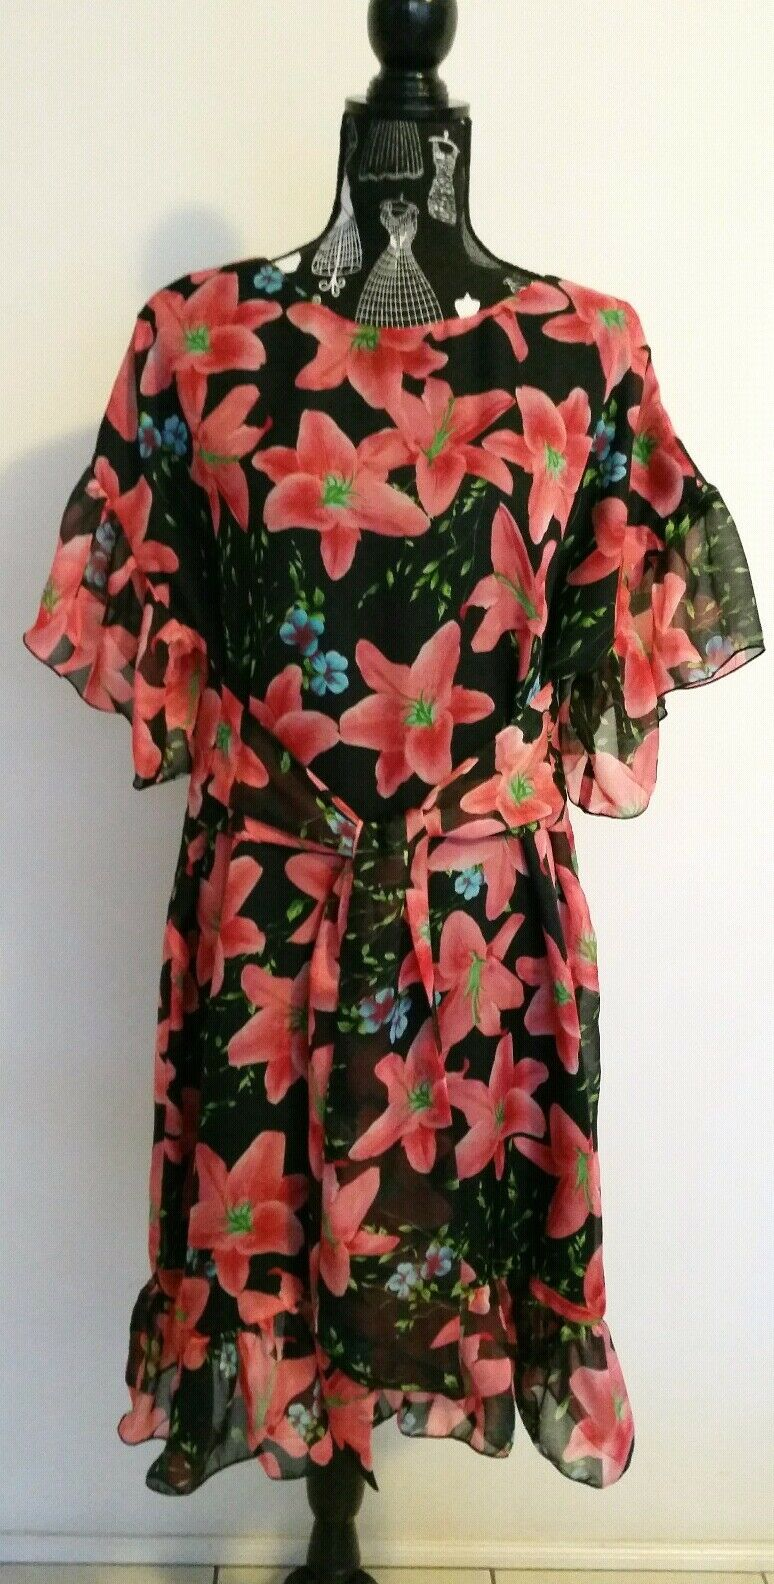 NEW Red Lily ruffle shift dress with tie waist belt, size 12-14